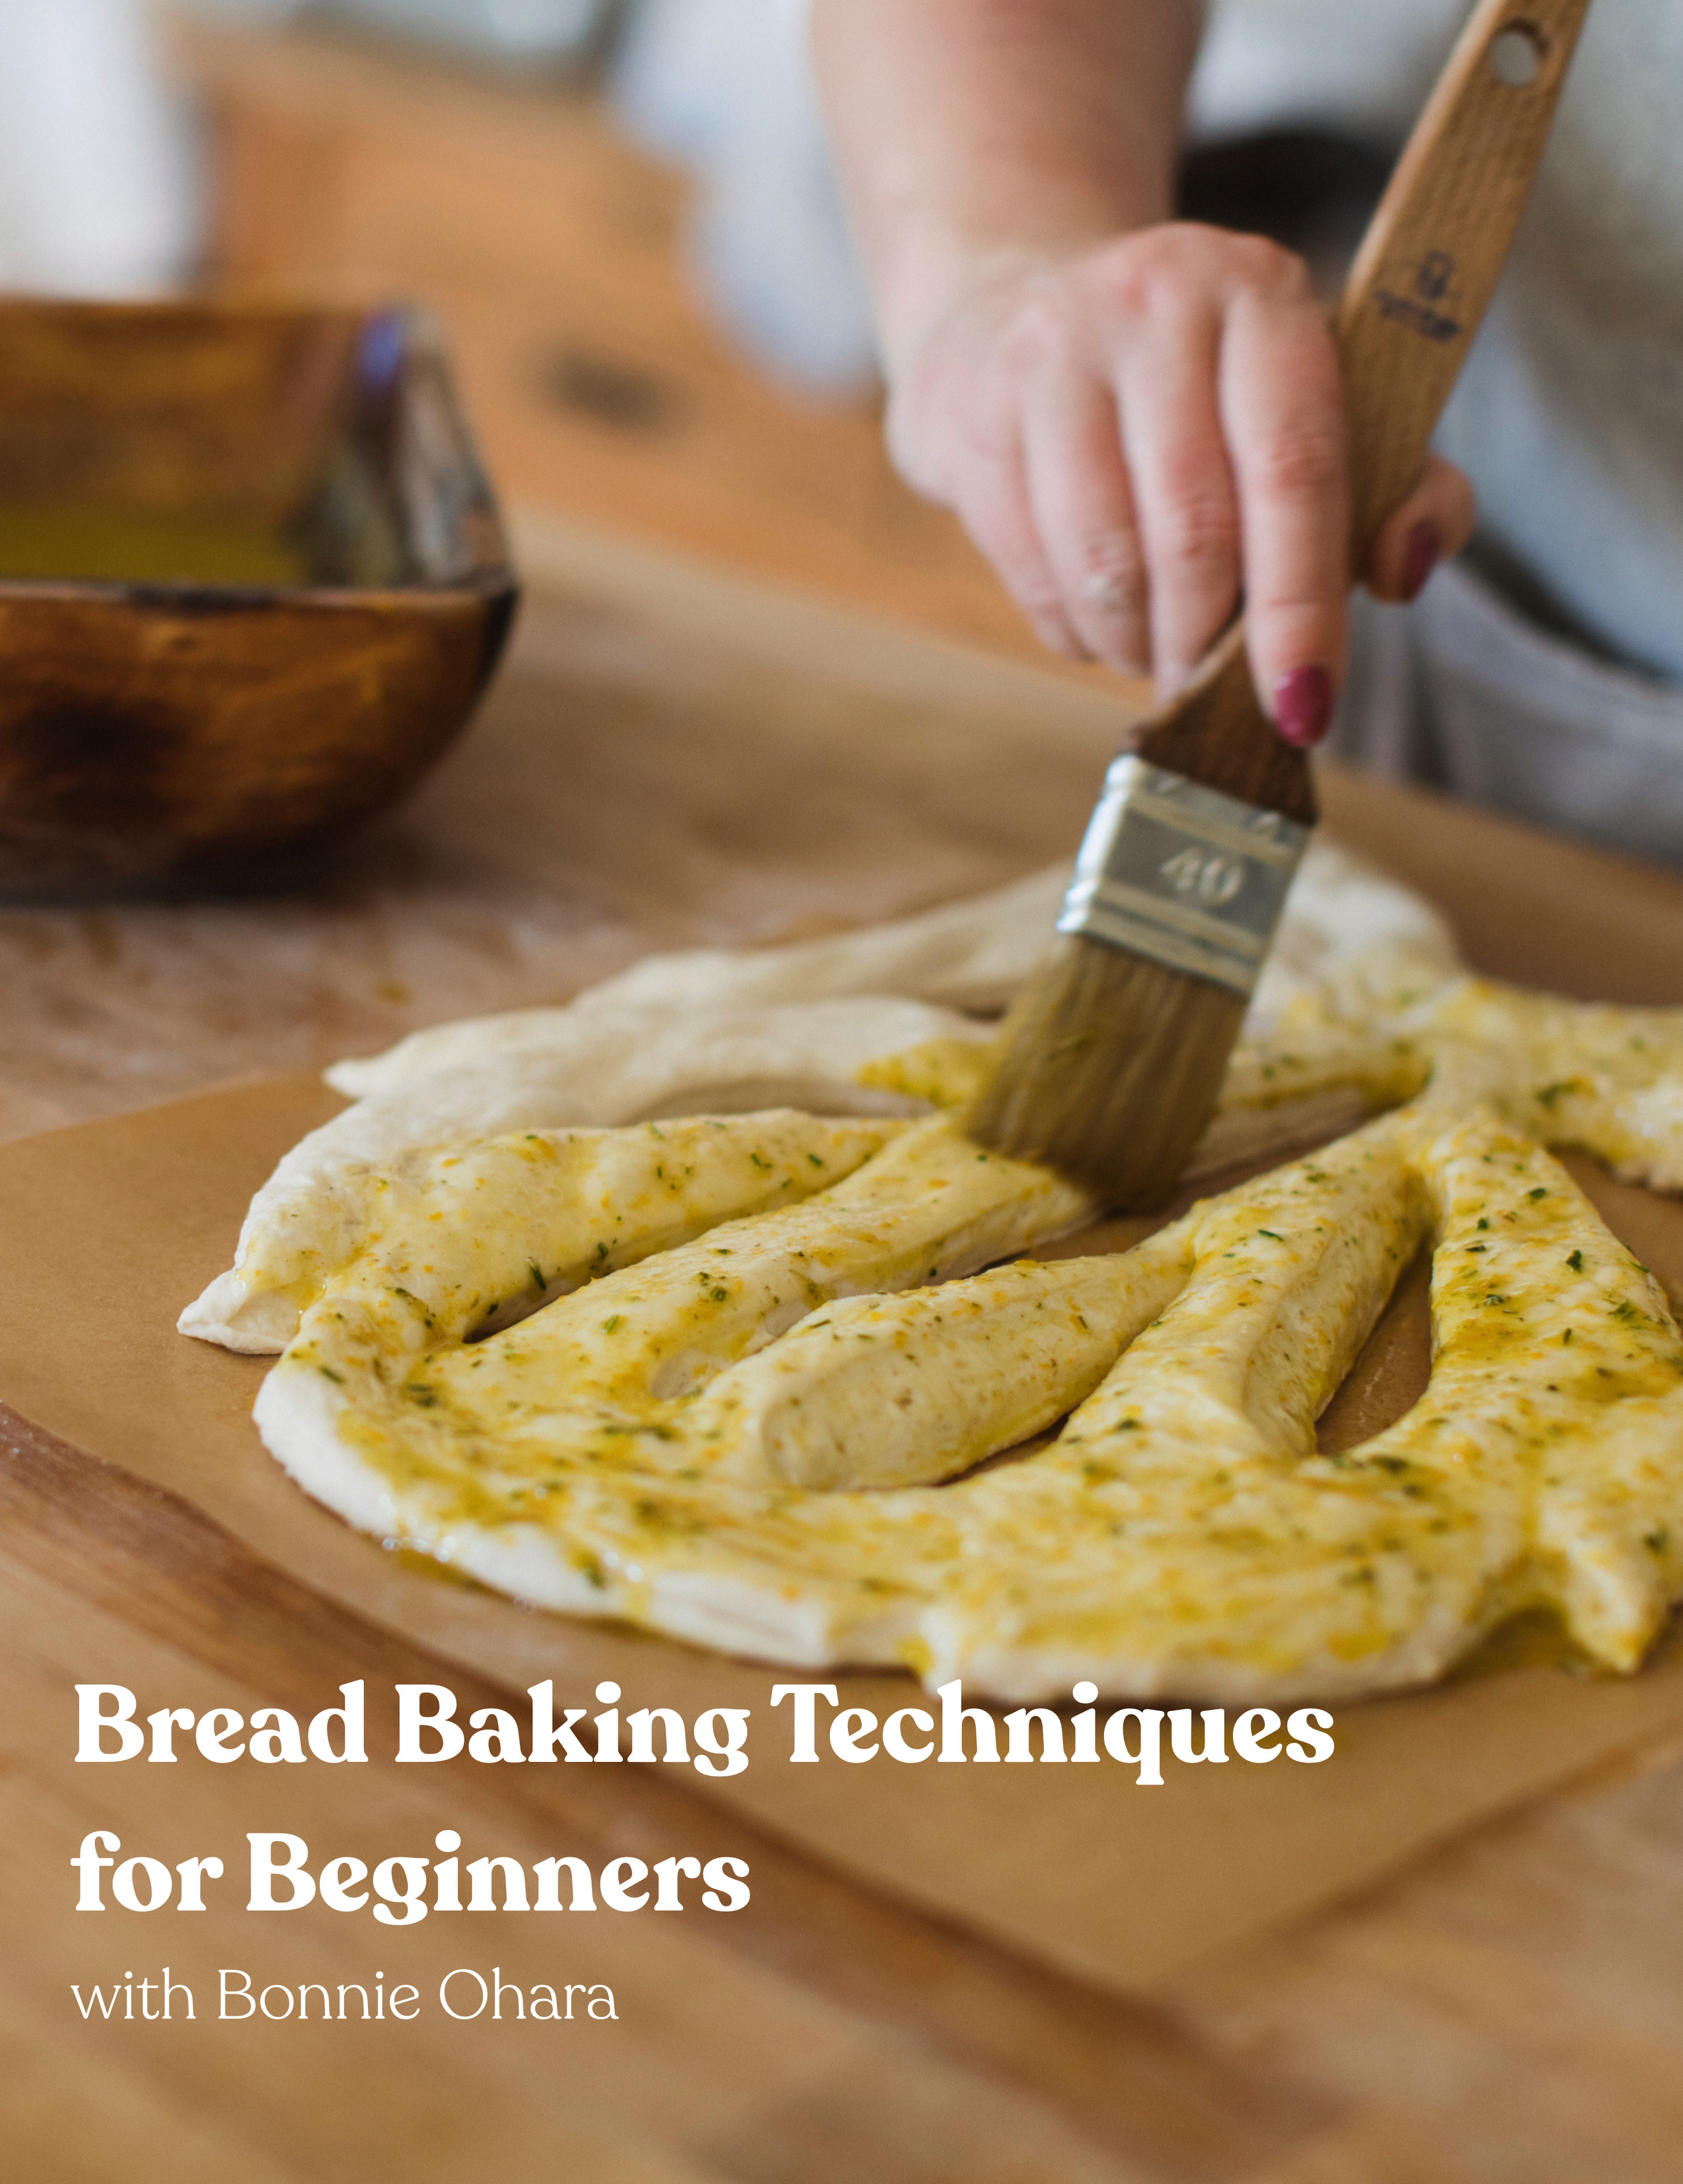 Bread Baking Techniques for Beginners cover photo